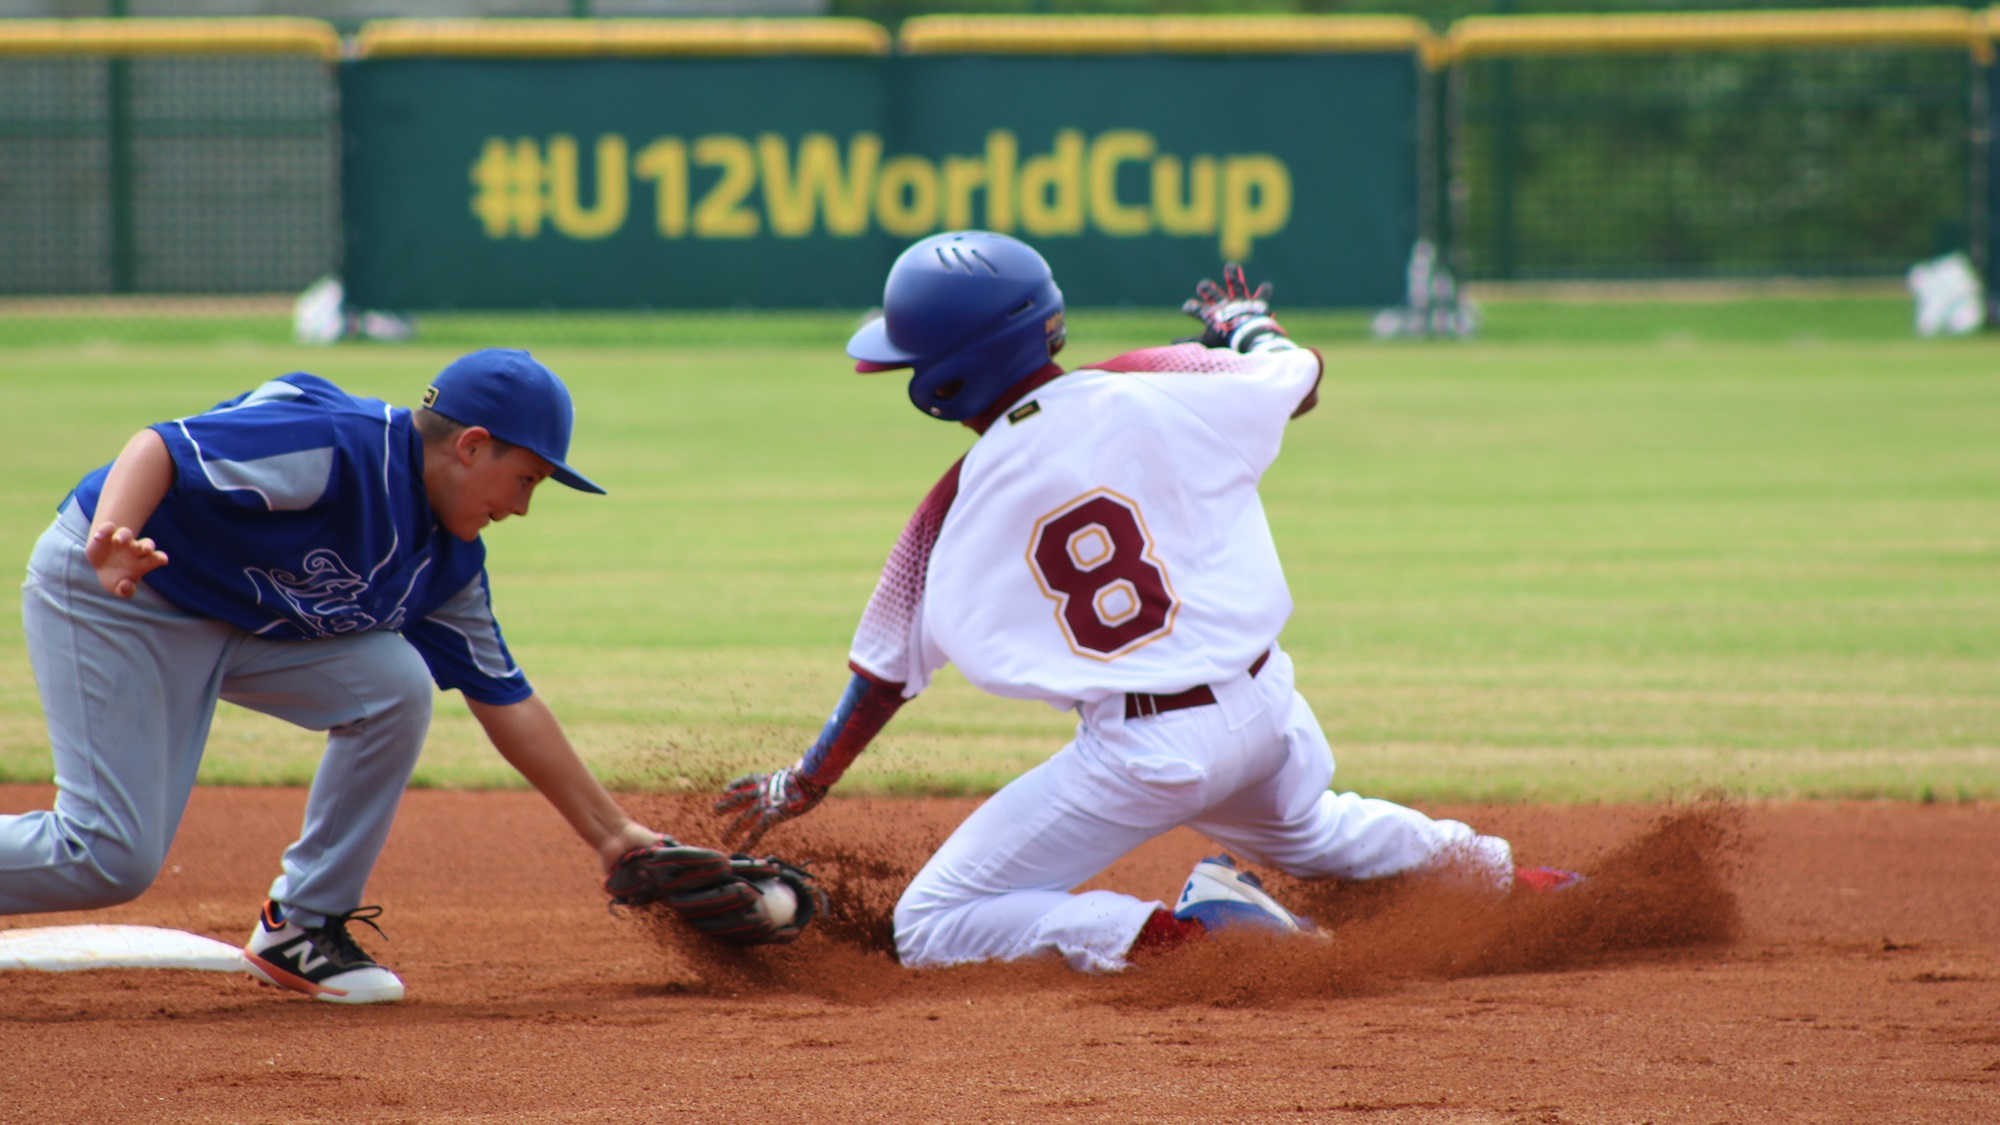 Italian shortstop Ruggeri tags Venezuela's Blanco for the out